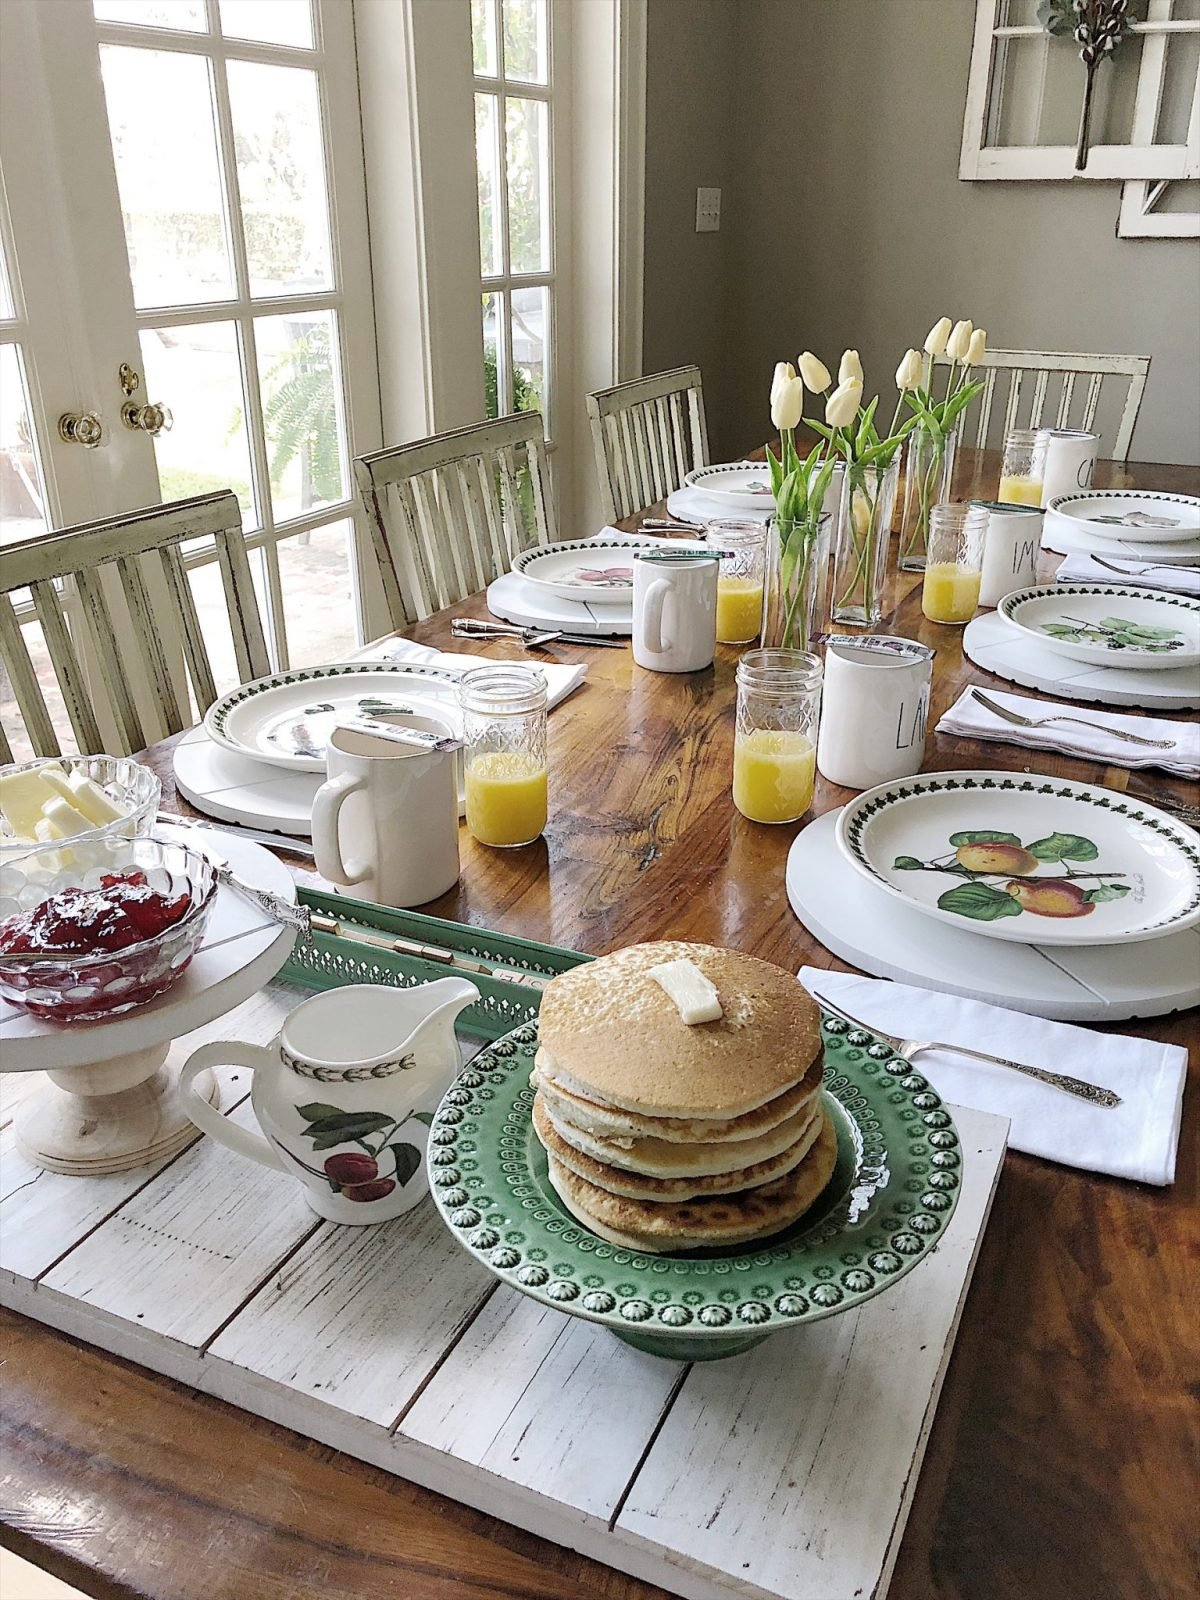 Decorating Your Home For Spring Breakfast